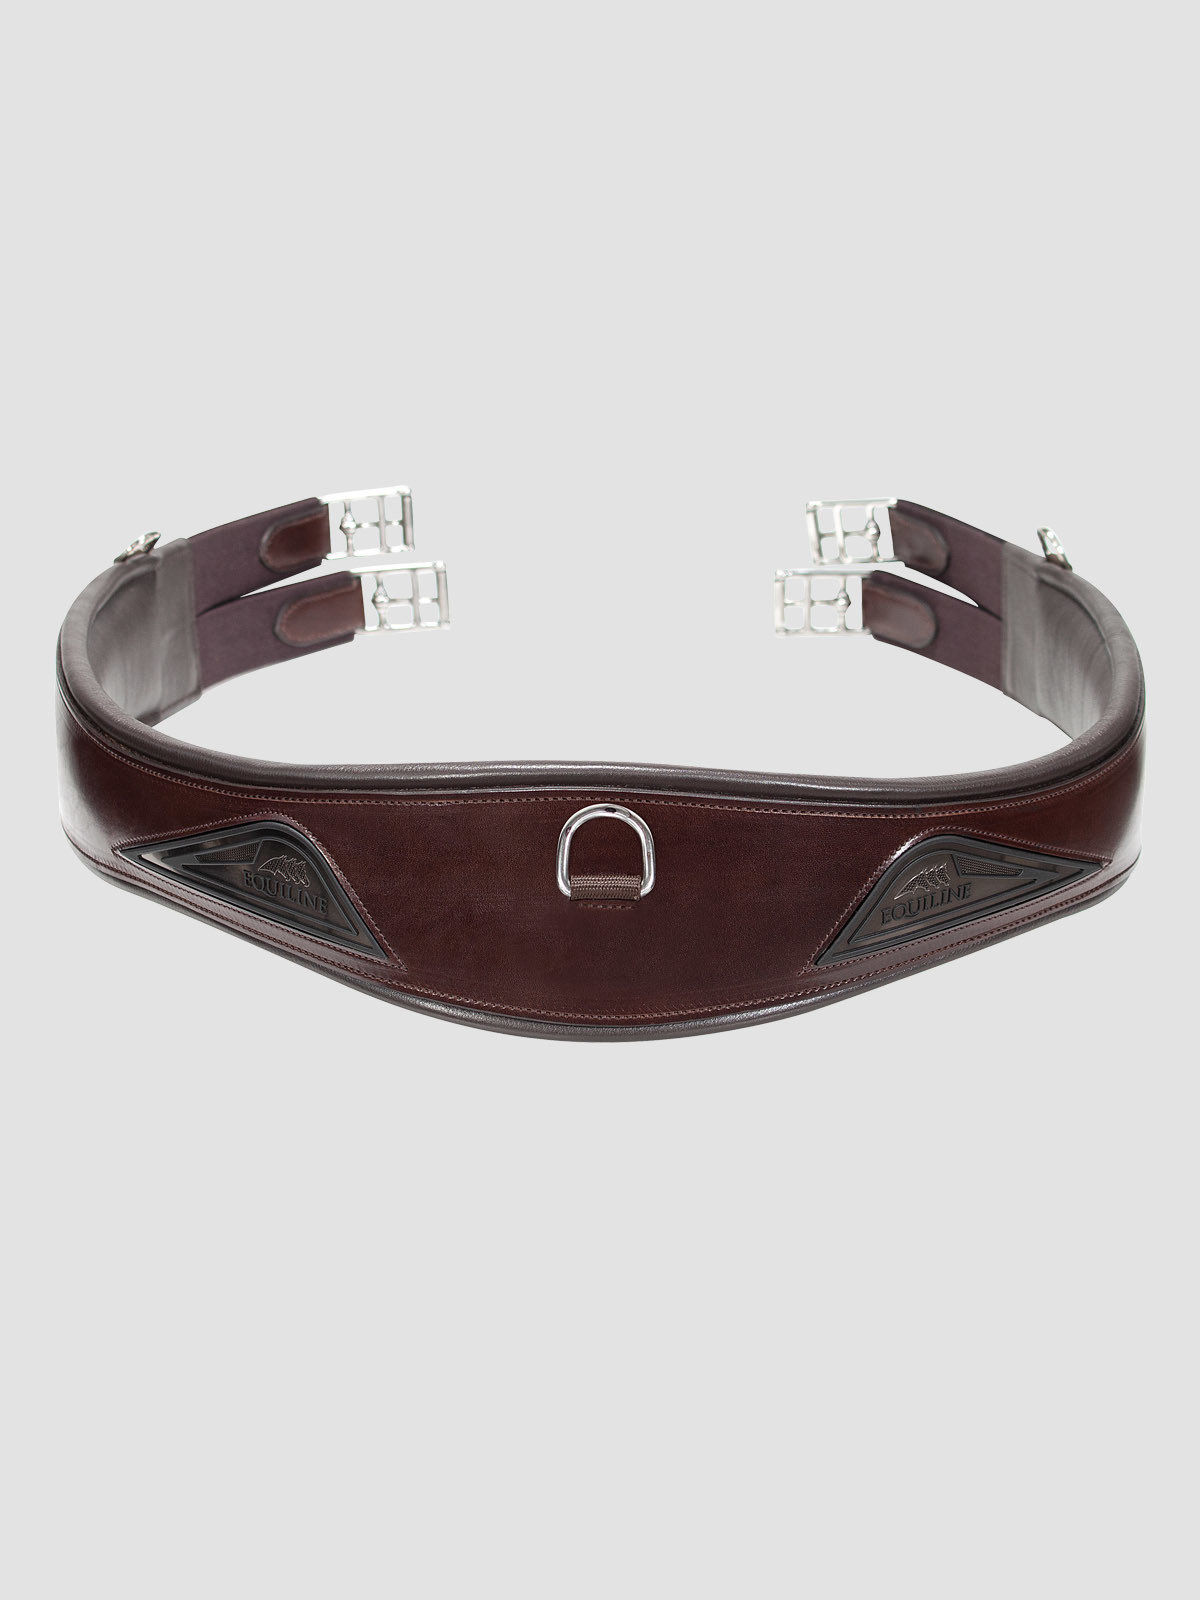 Brown Equiline leather girth